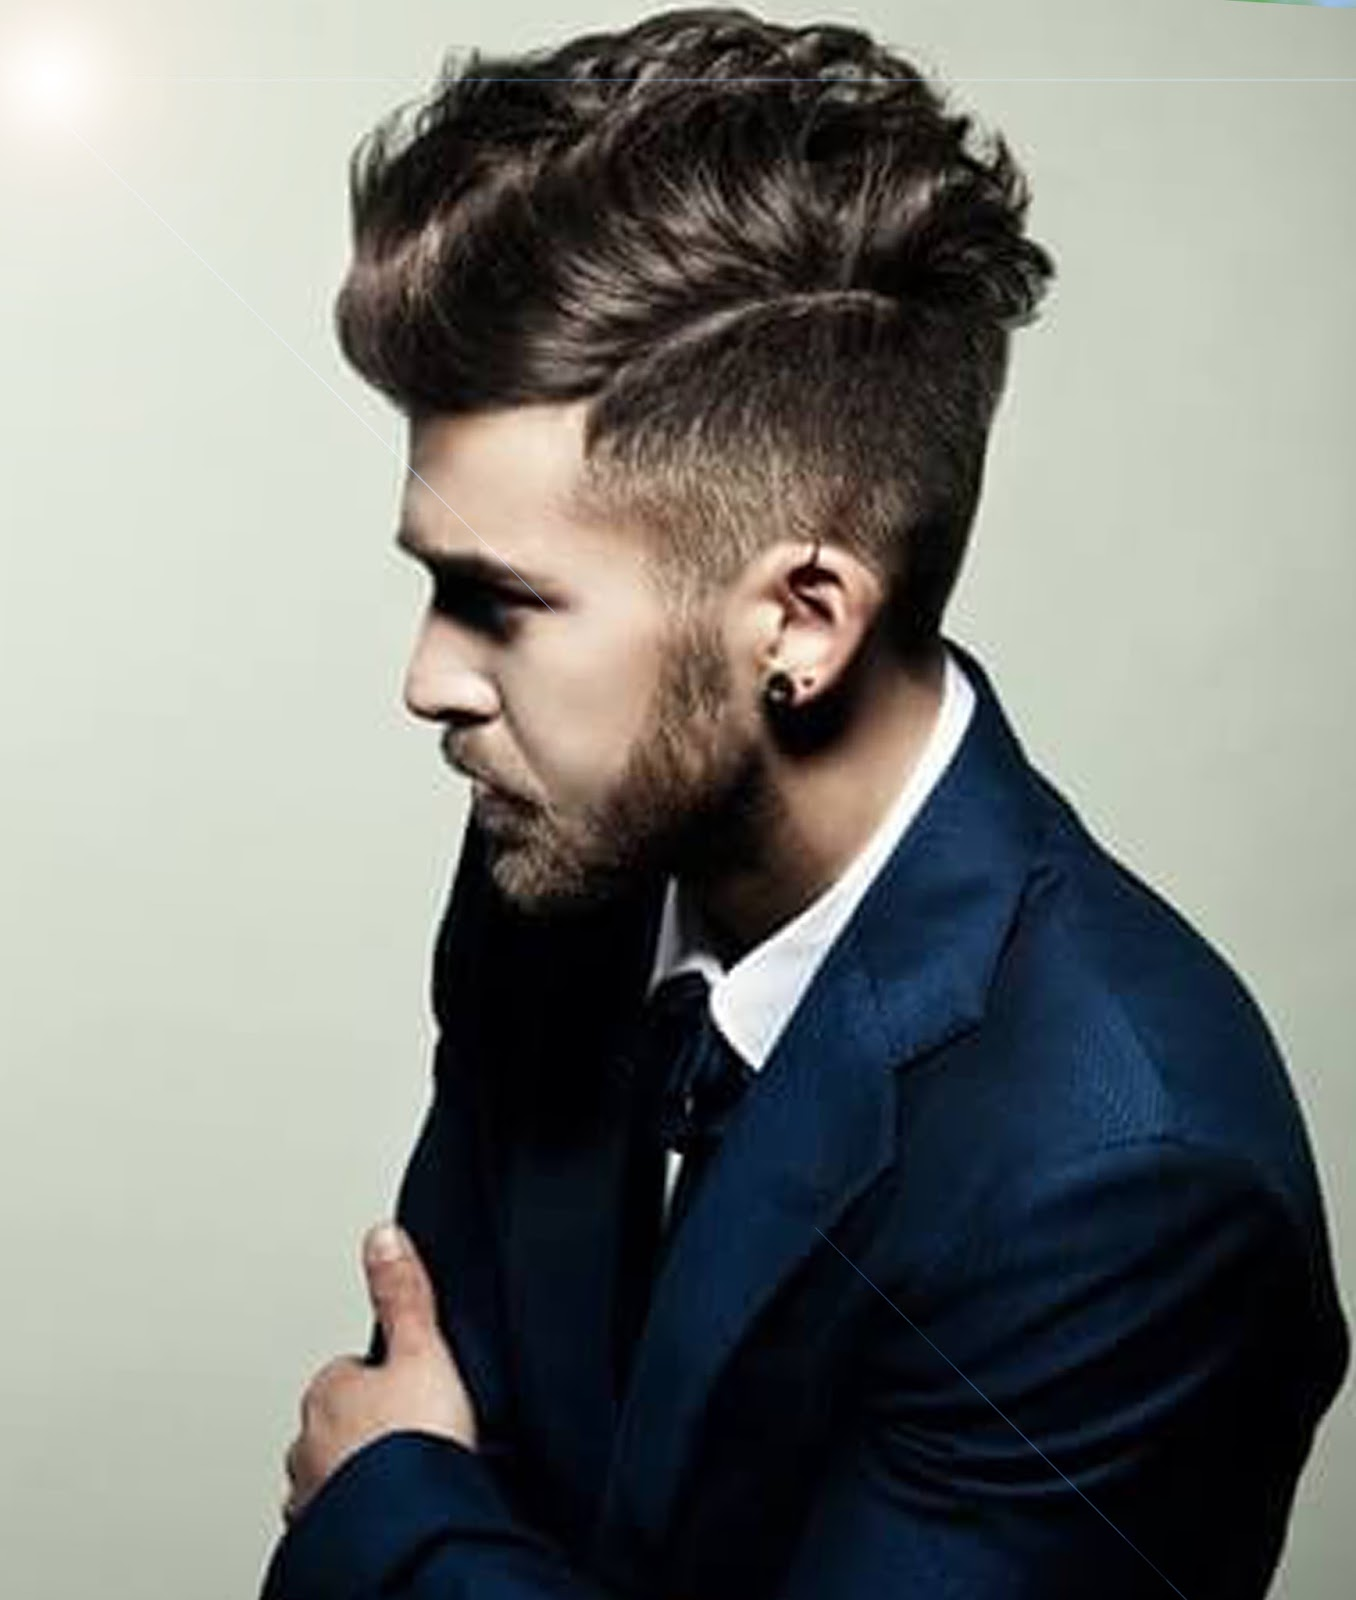 Top 5 Undercut Hairstyles For Men Hairstyles Spot